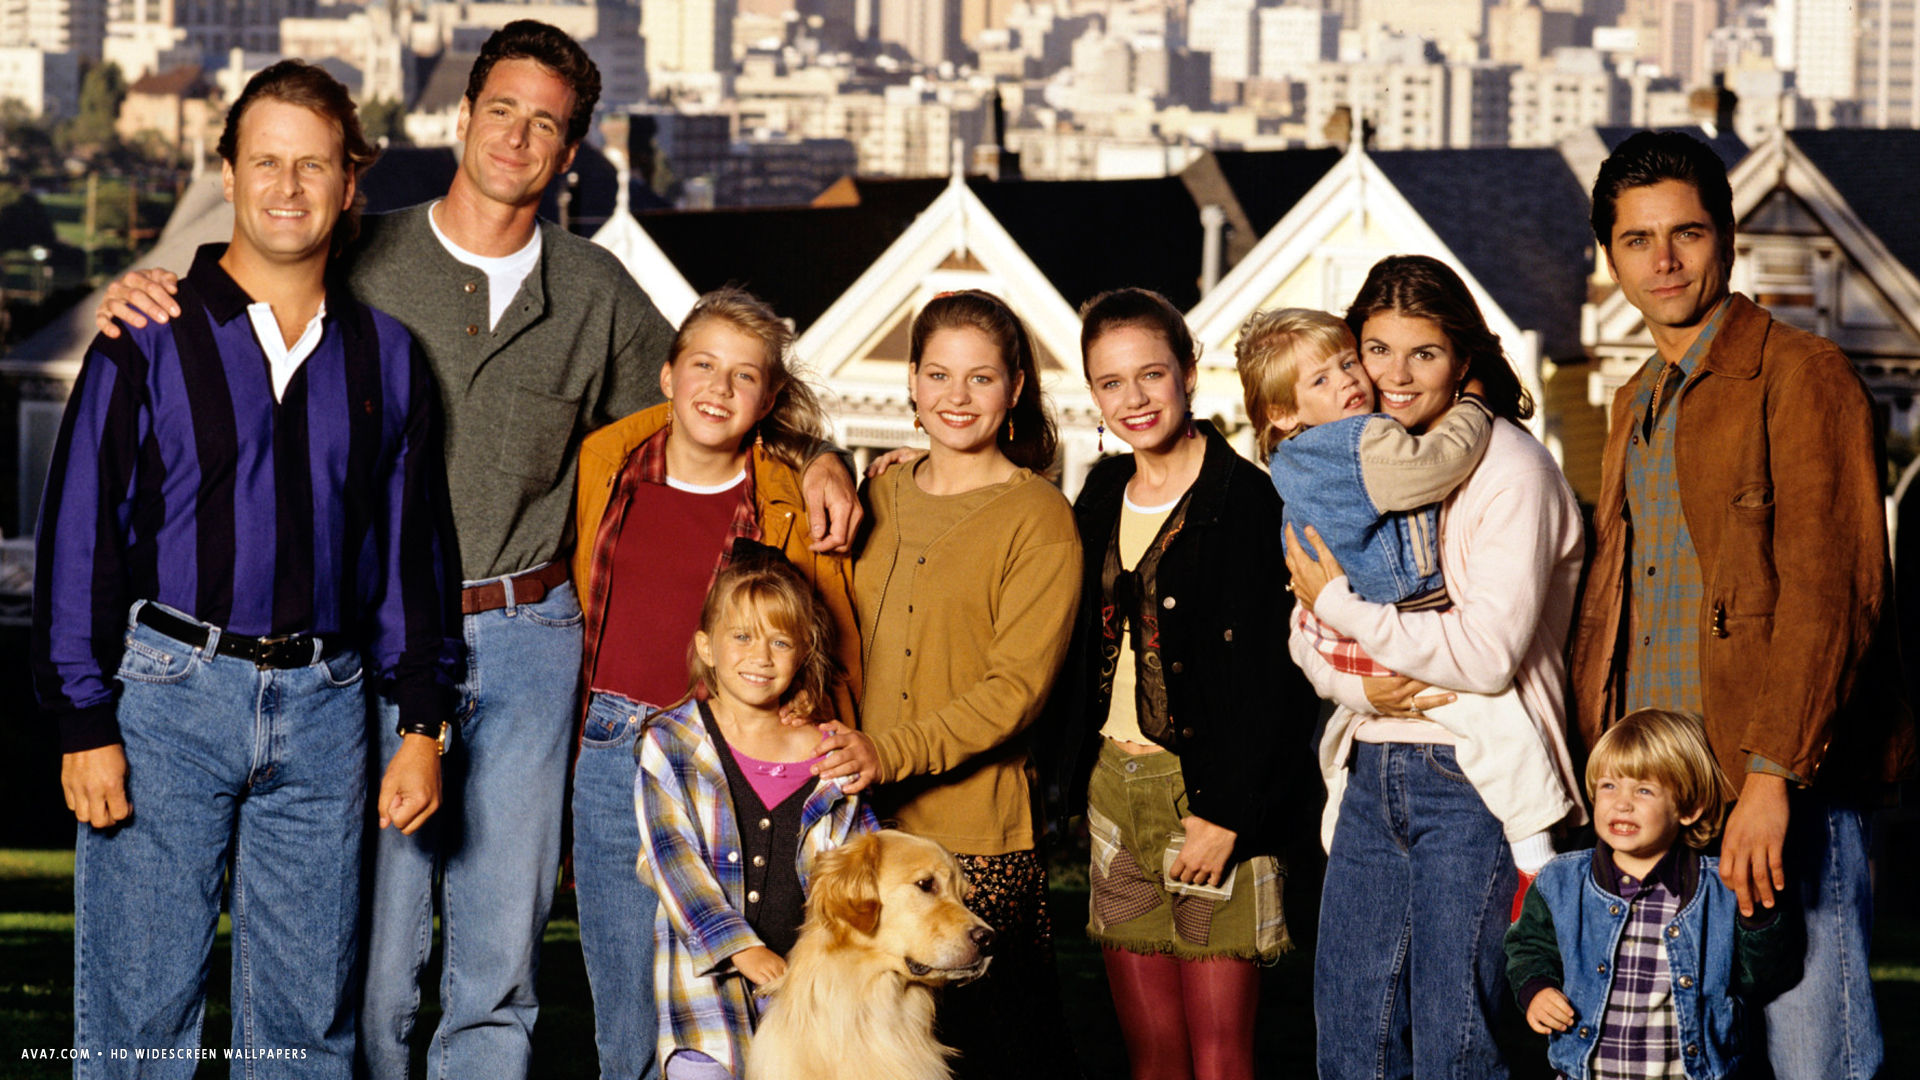 Full house tv series show hd widescreen wallpaper tv series backgrounds - House of tv show ...